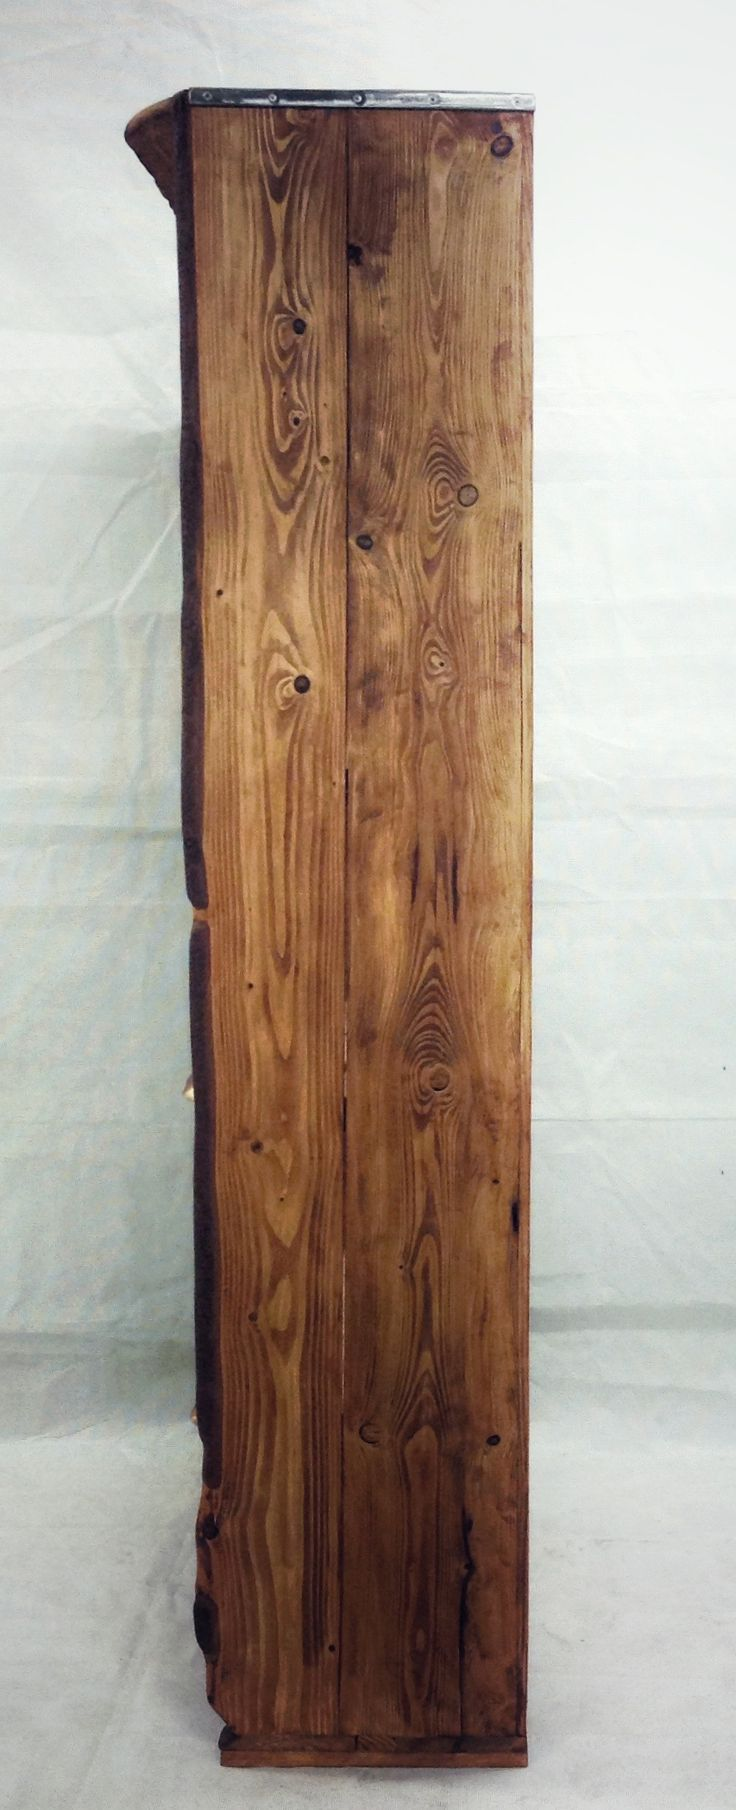 Hand crafted closed, made of Ash-wood with cortex. 205 cm x 88 cm x 44cm